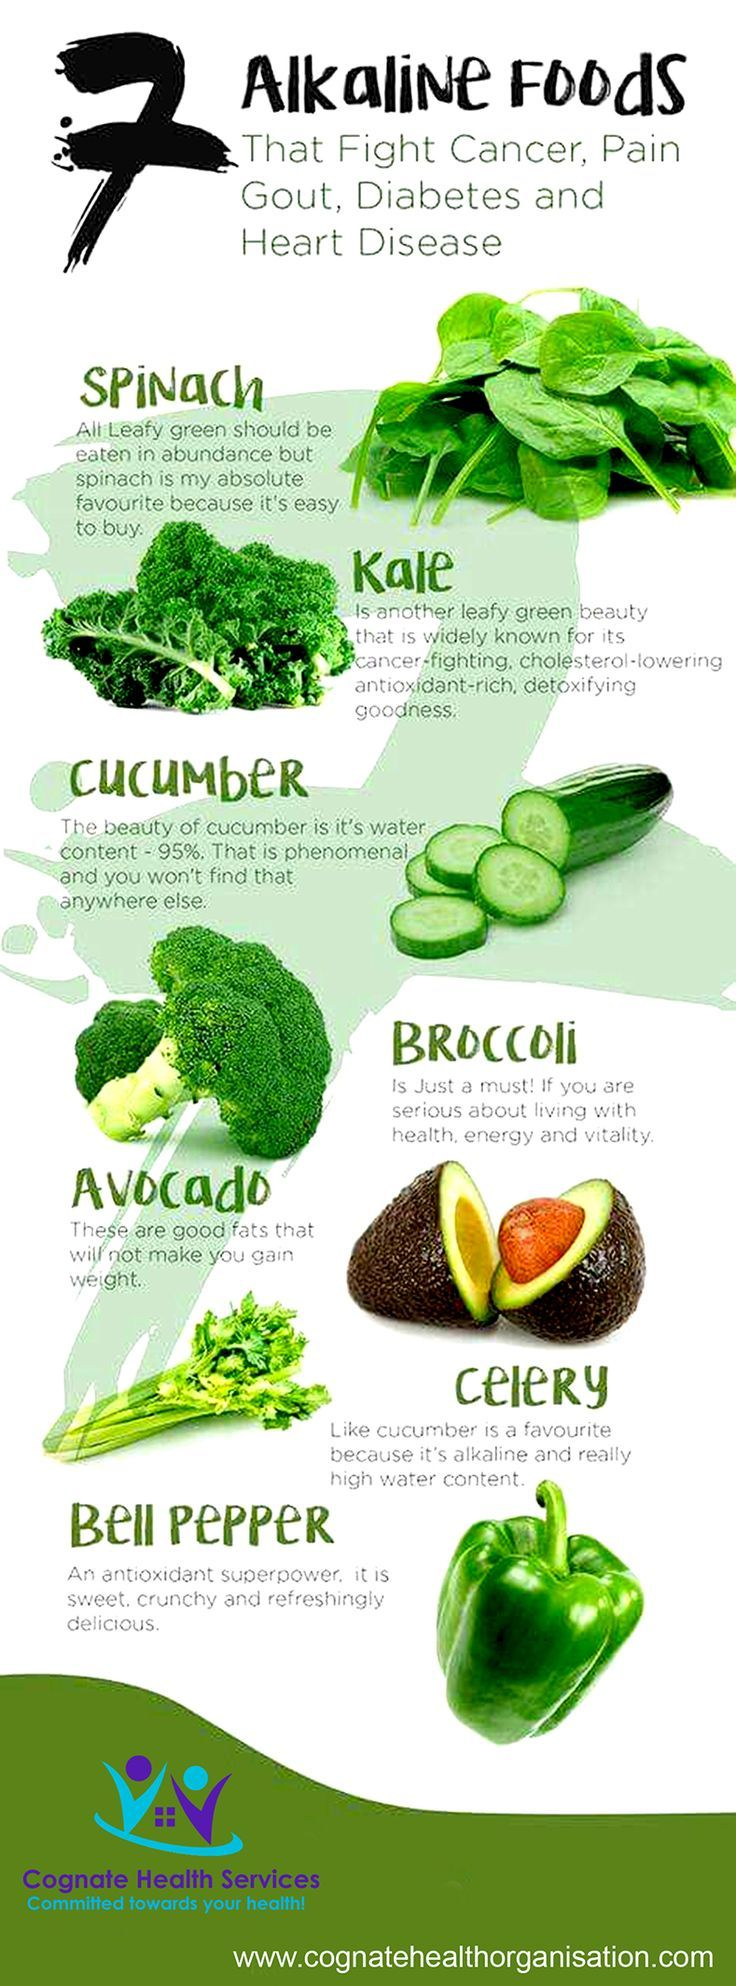 7 Alkaline Foods  That Fight Cancer Pain Gout Diabetes and Heart Disease!  Vi